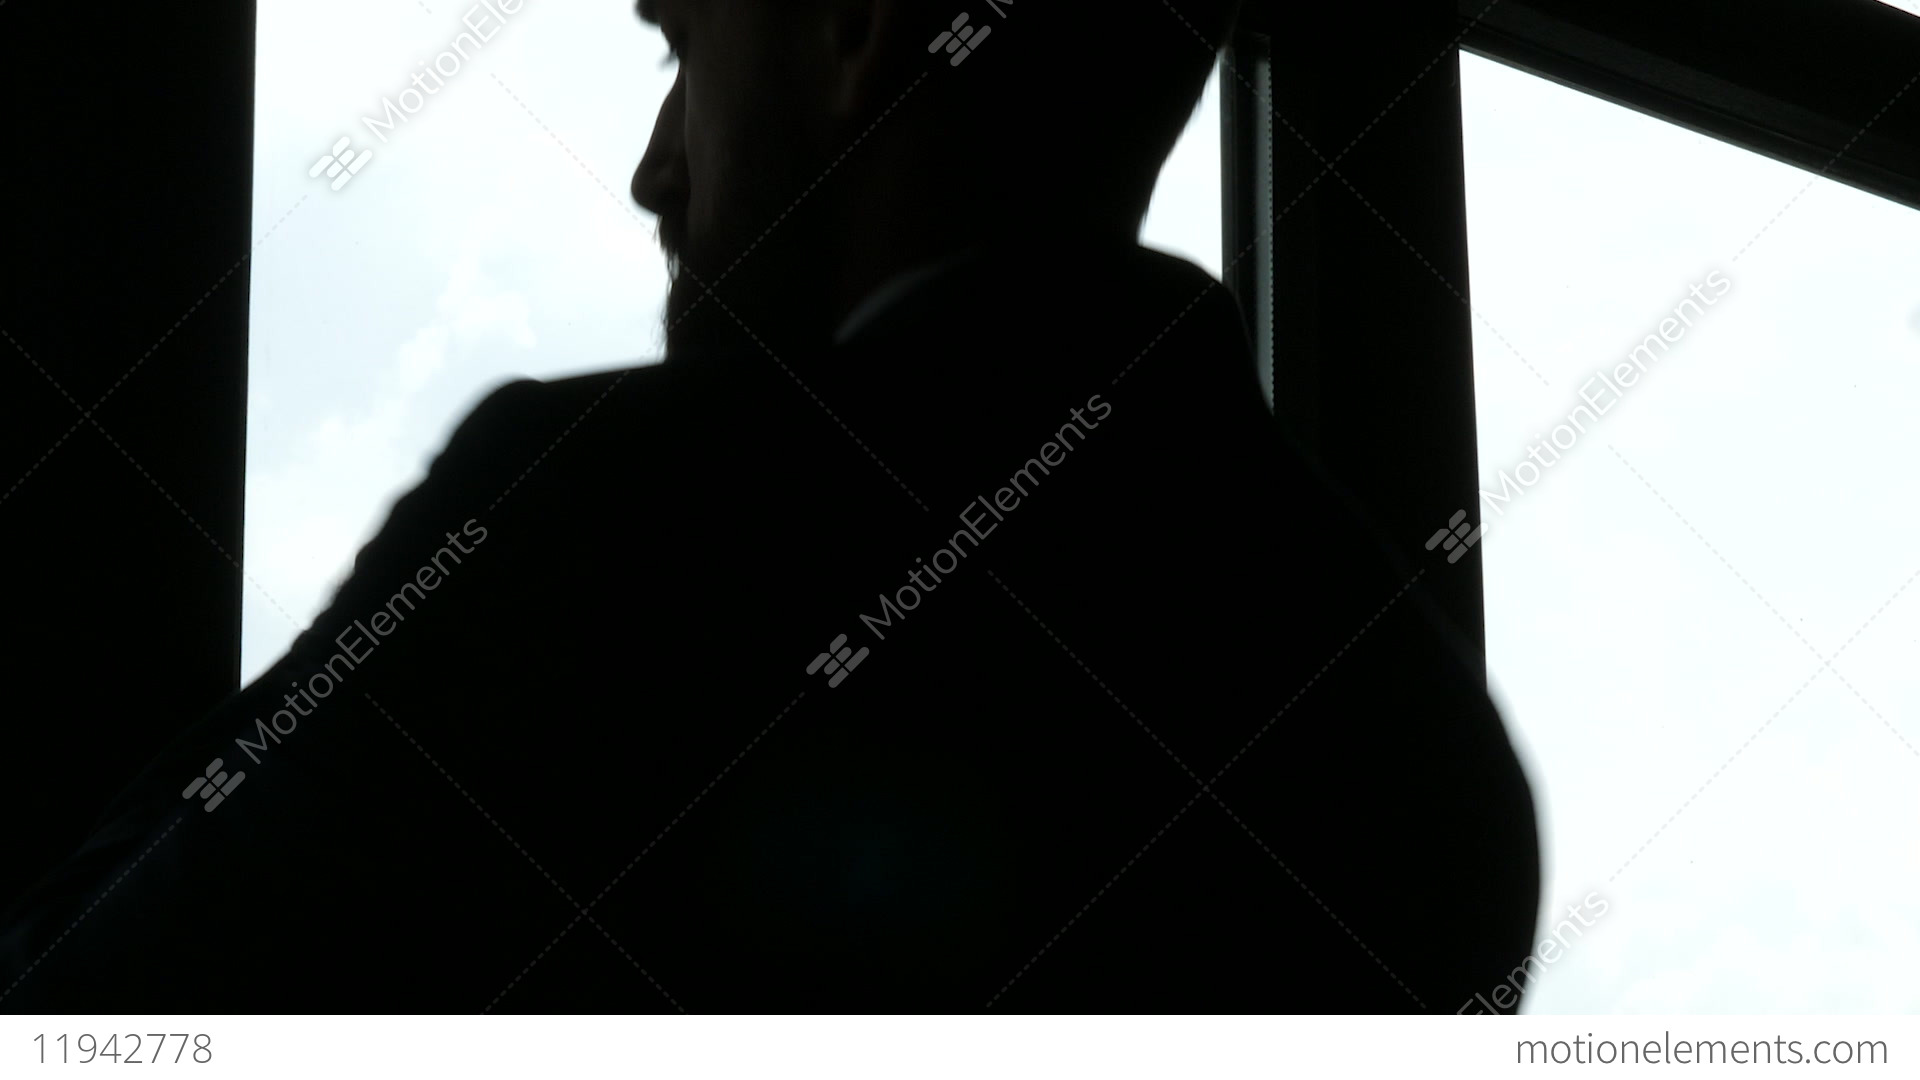 tired exhausted and stressed businessman silhouette approaches the